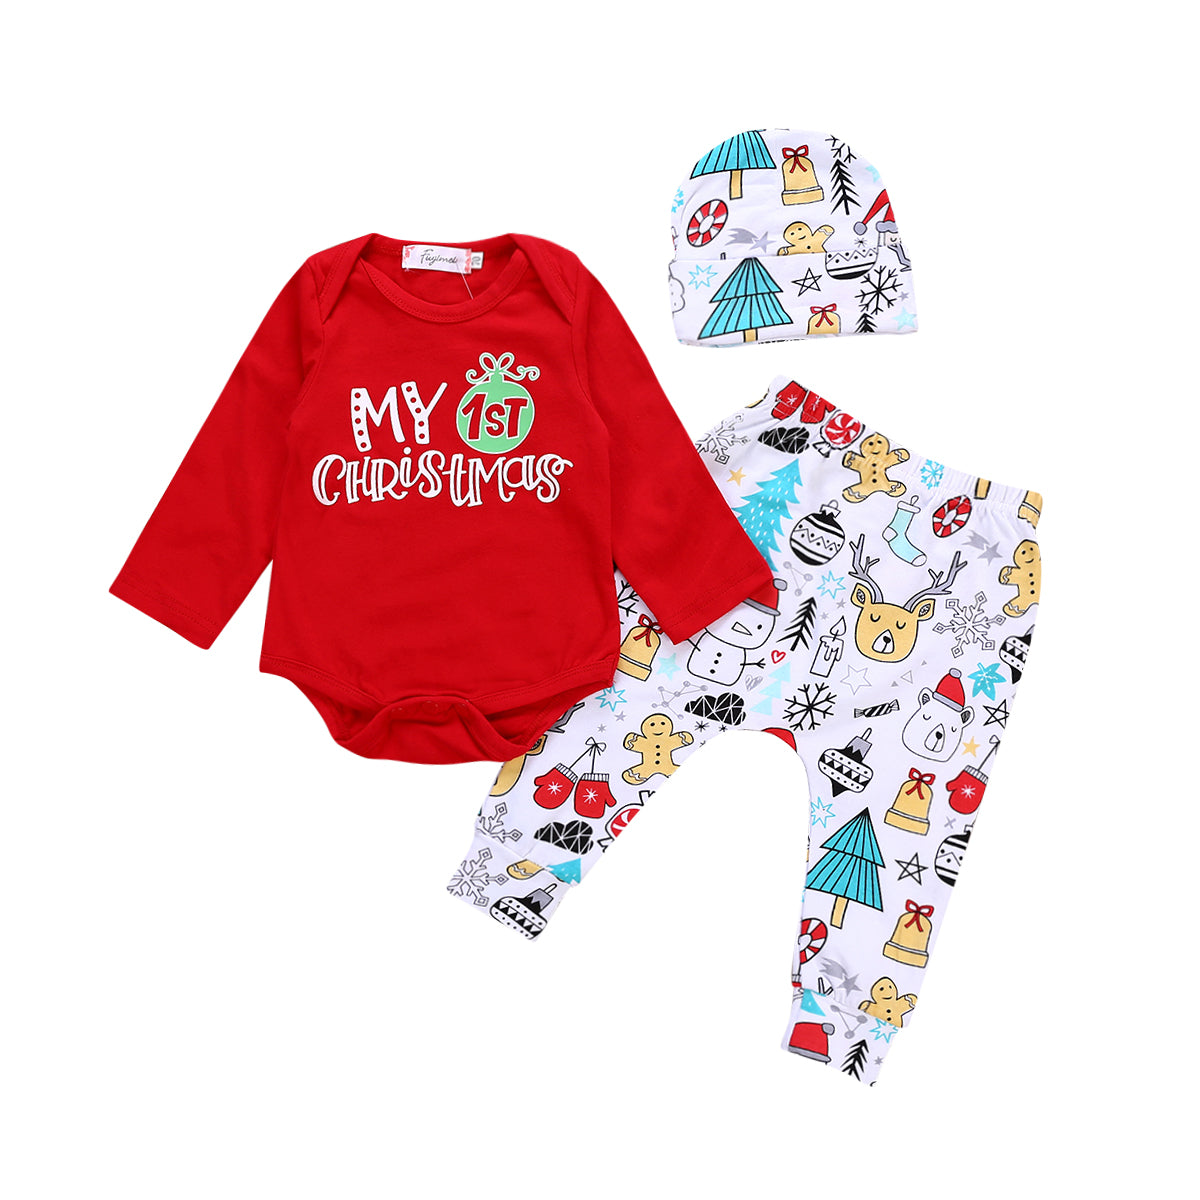 Christmas Tops.Toddler Baby Boys Girls Christmas Tops Romper Deer Pants Hat Outfits